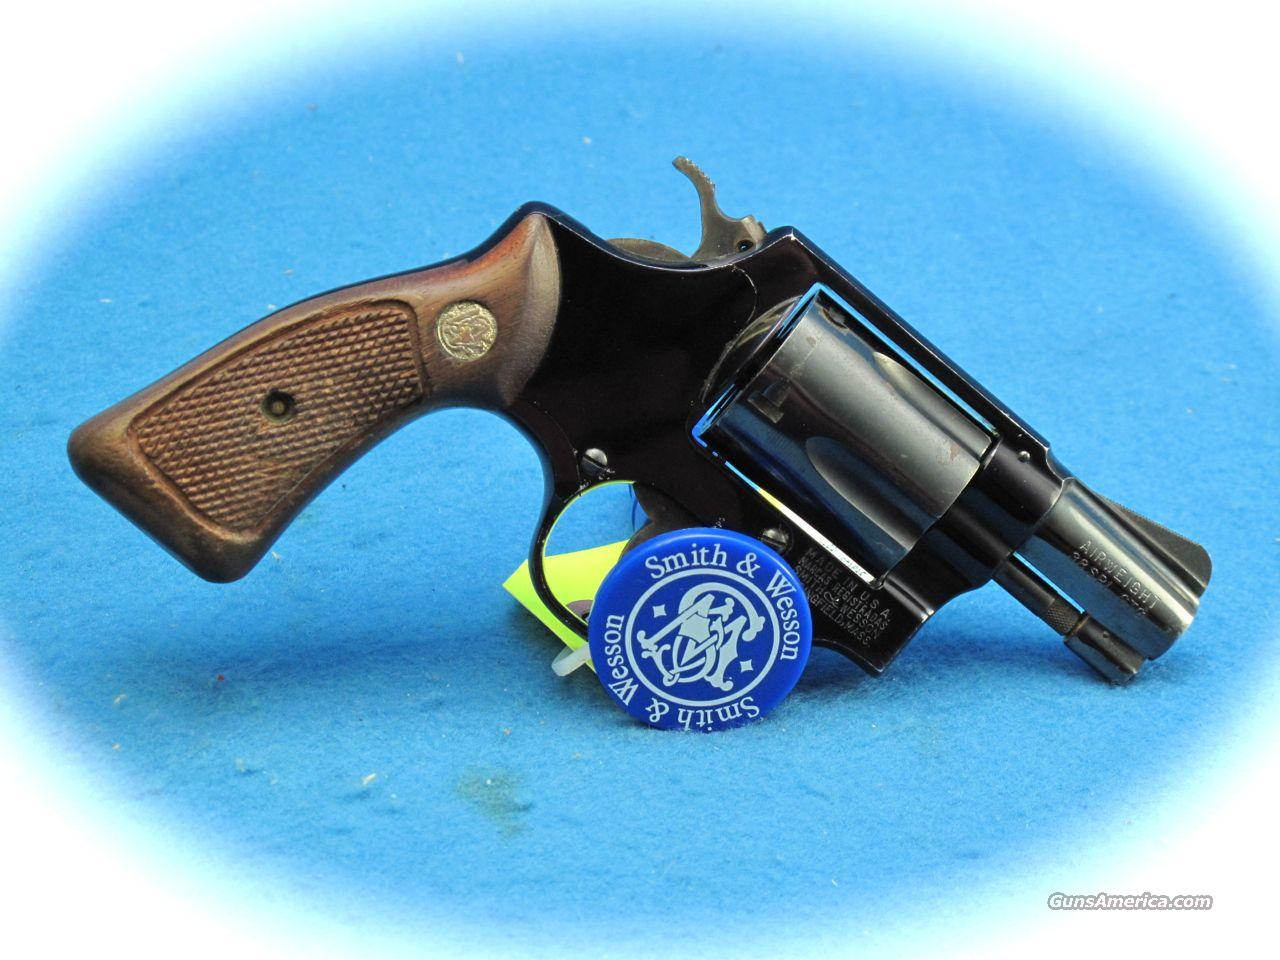 Smith & Wesson Model 37 Airweight Revolver 38 Spl. **USED**  Guns > Pistols > Smith & Wesson Revolvers > Pocket Pistols